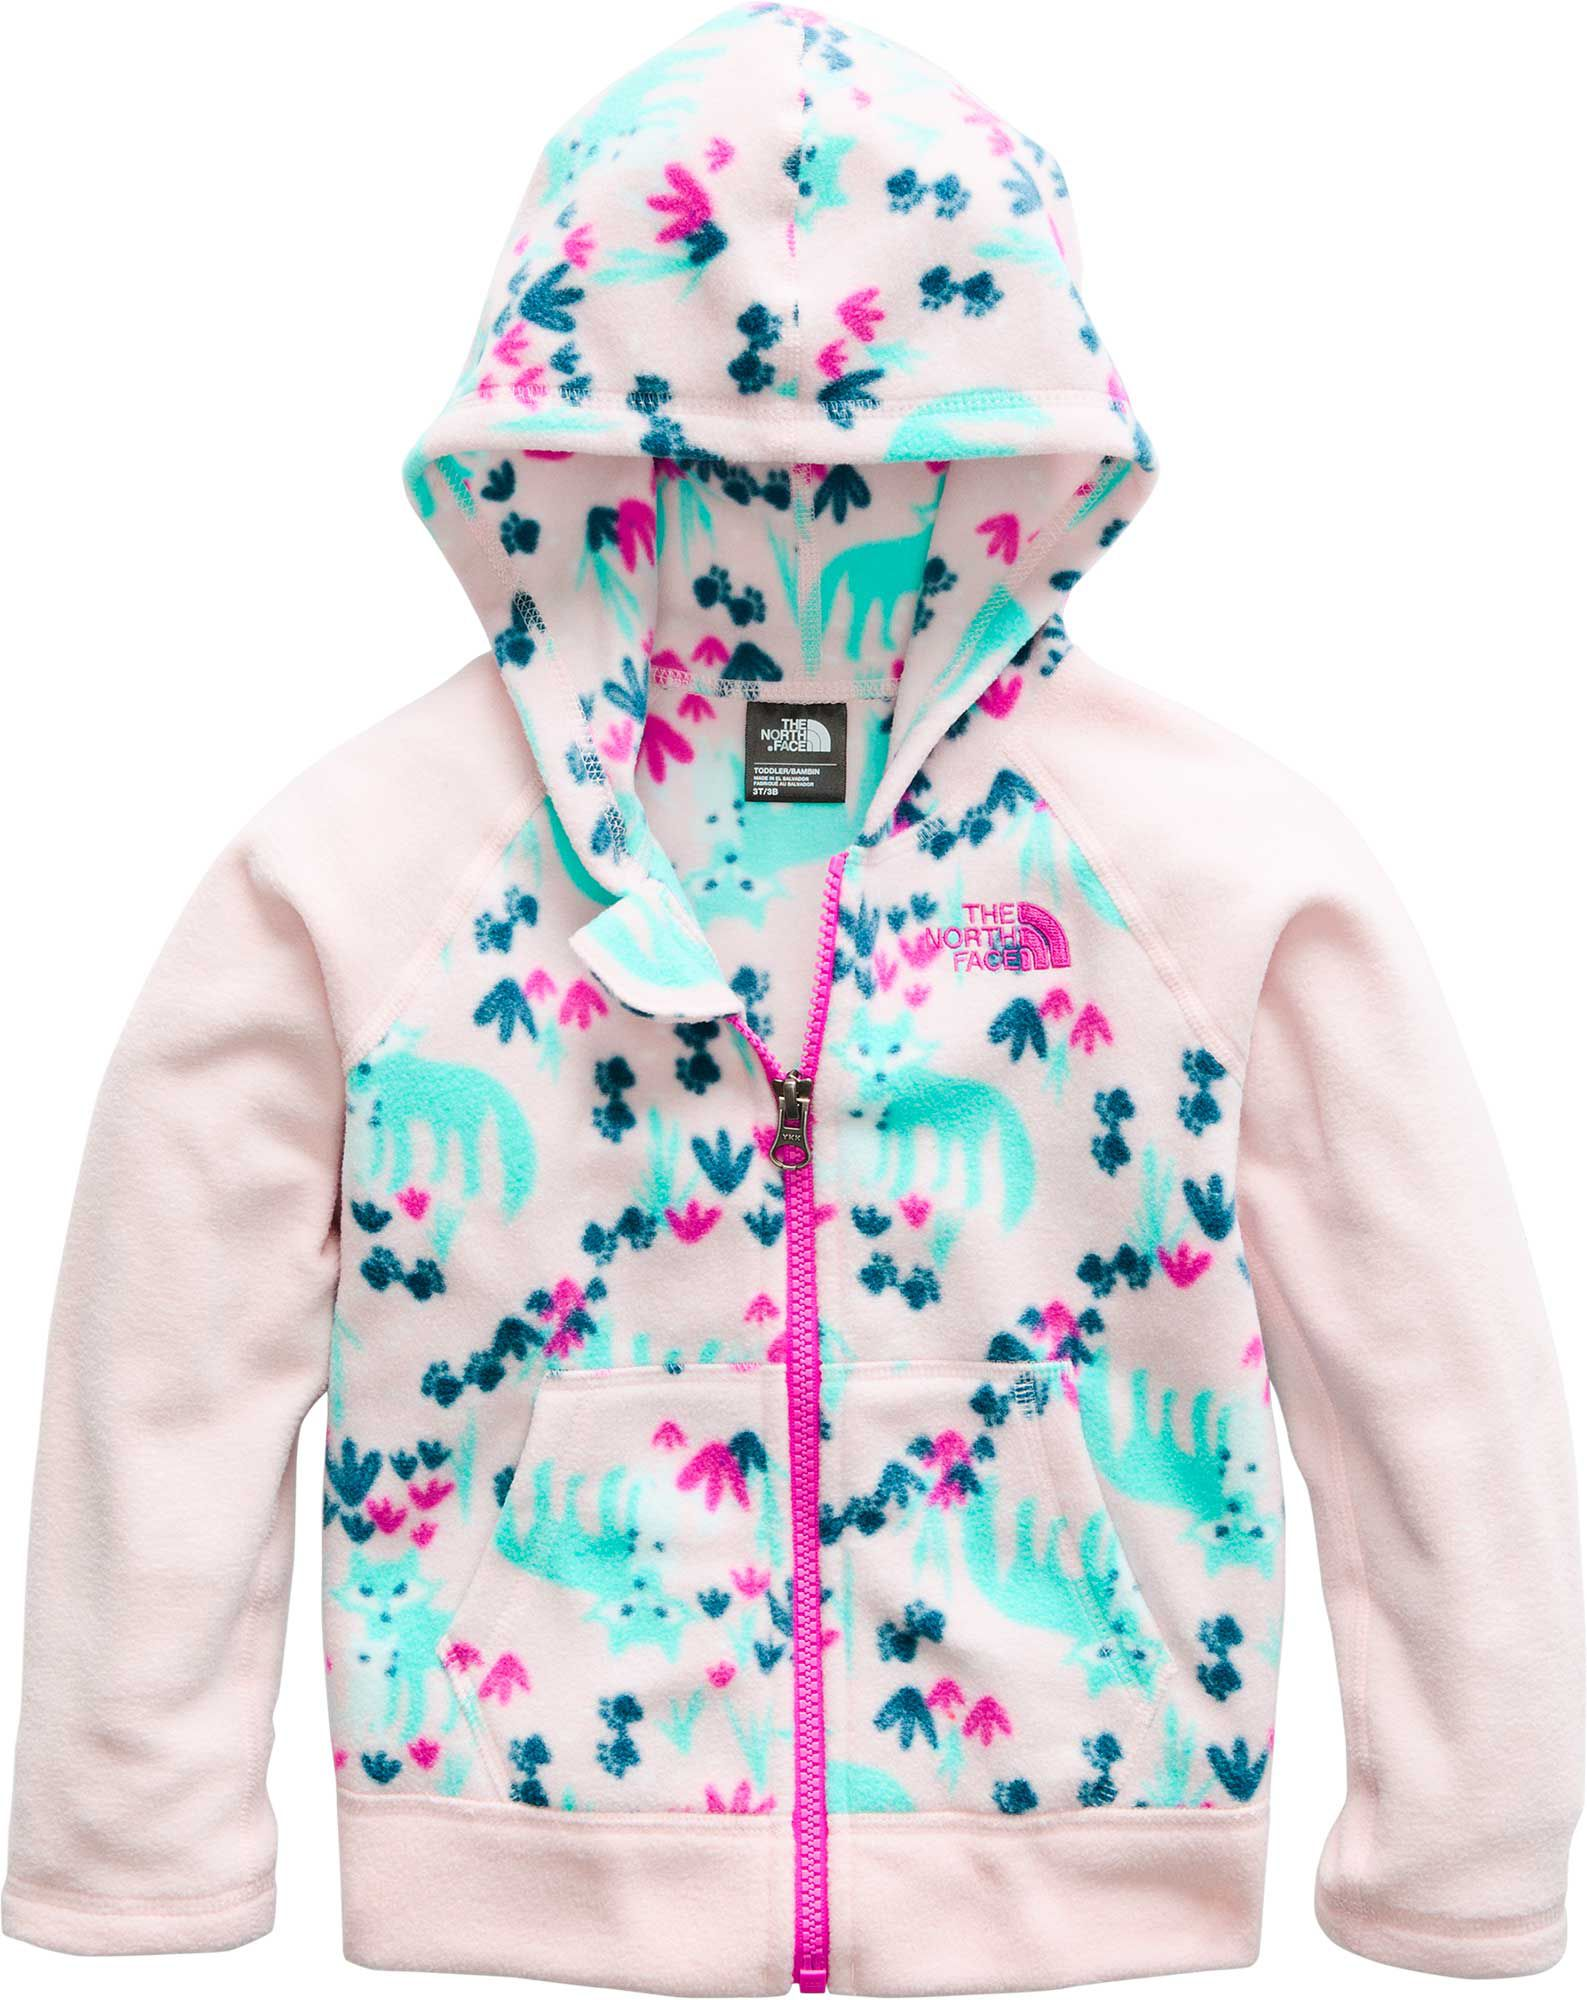 12f4f6cd9a The North Face Toddler Girls' Glacier Fleece Jacket | DICK'S ...